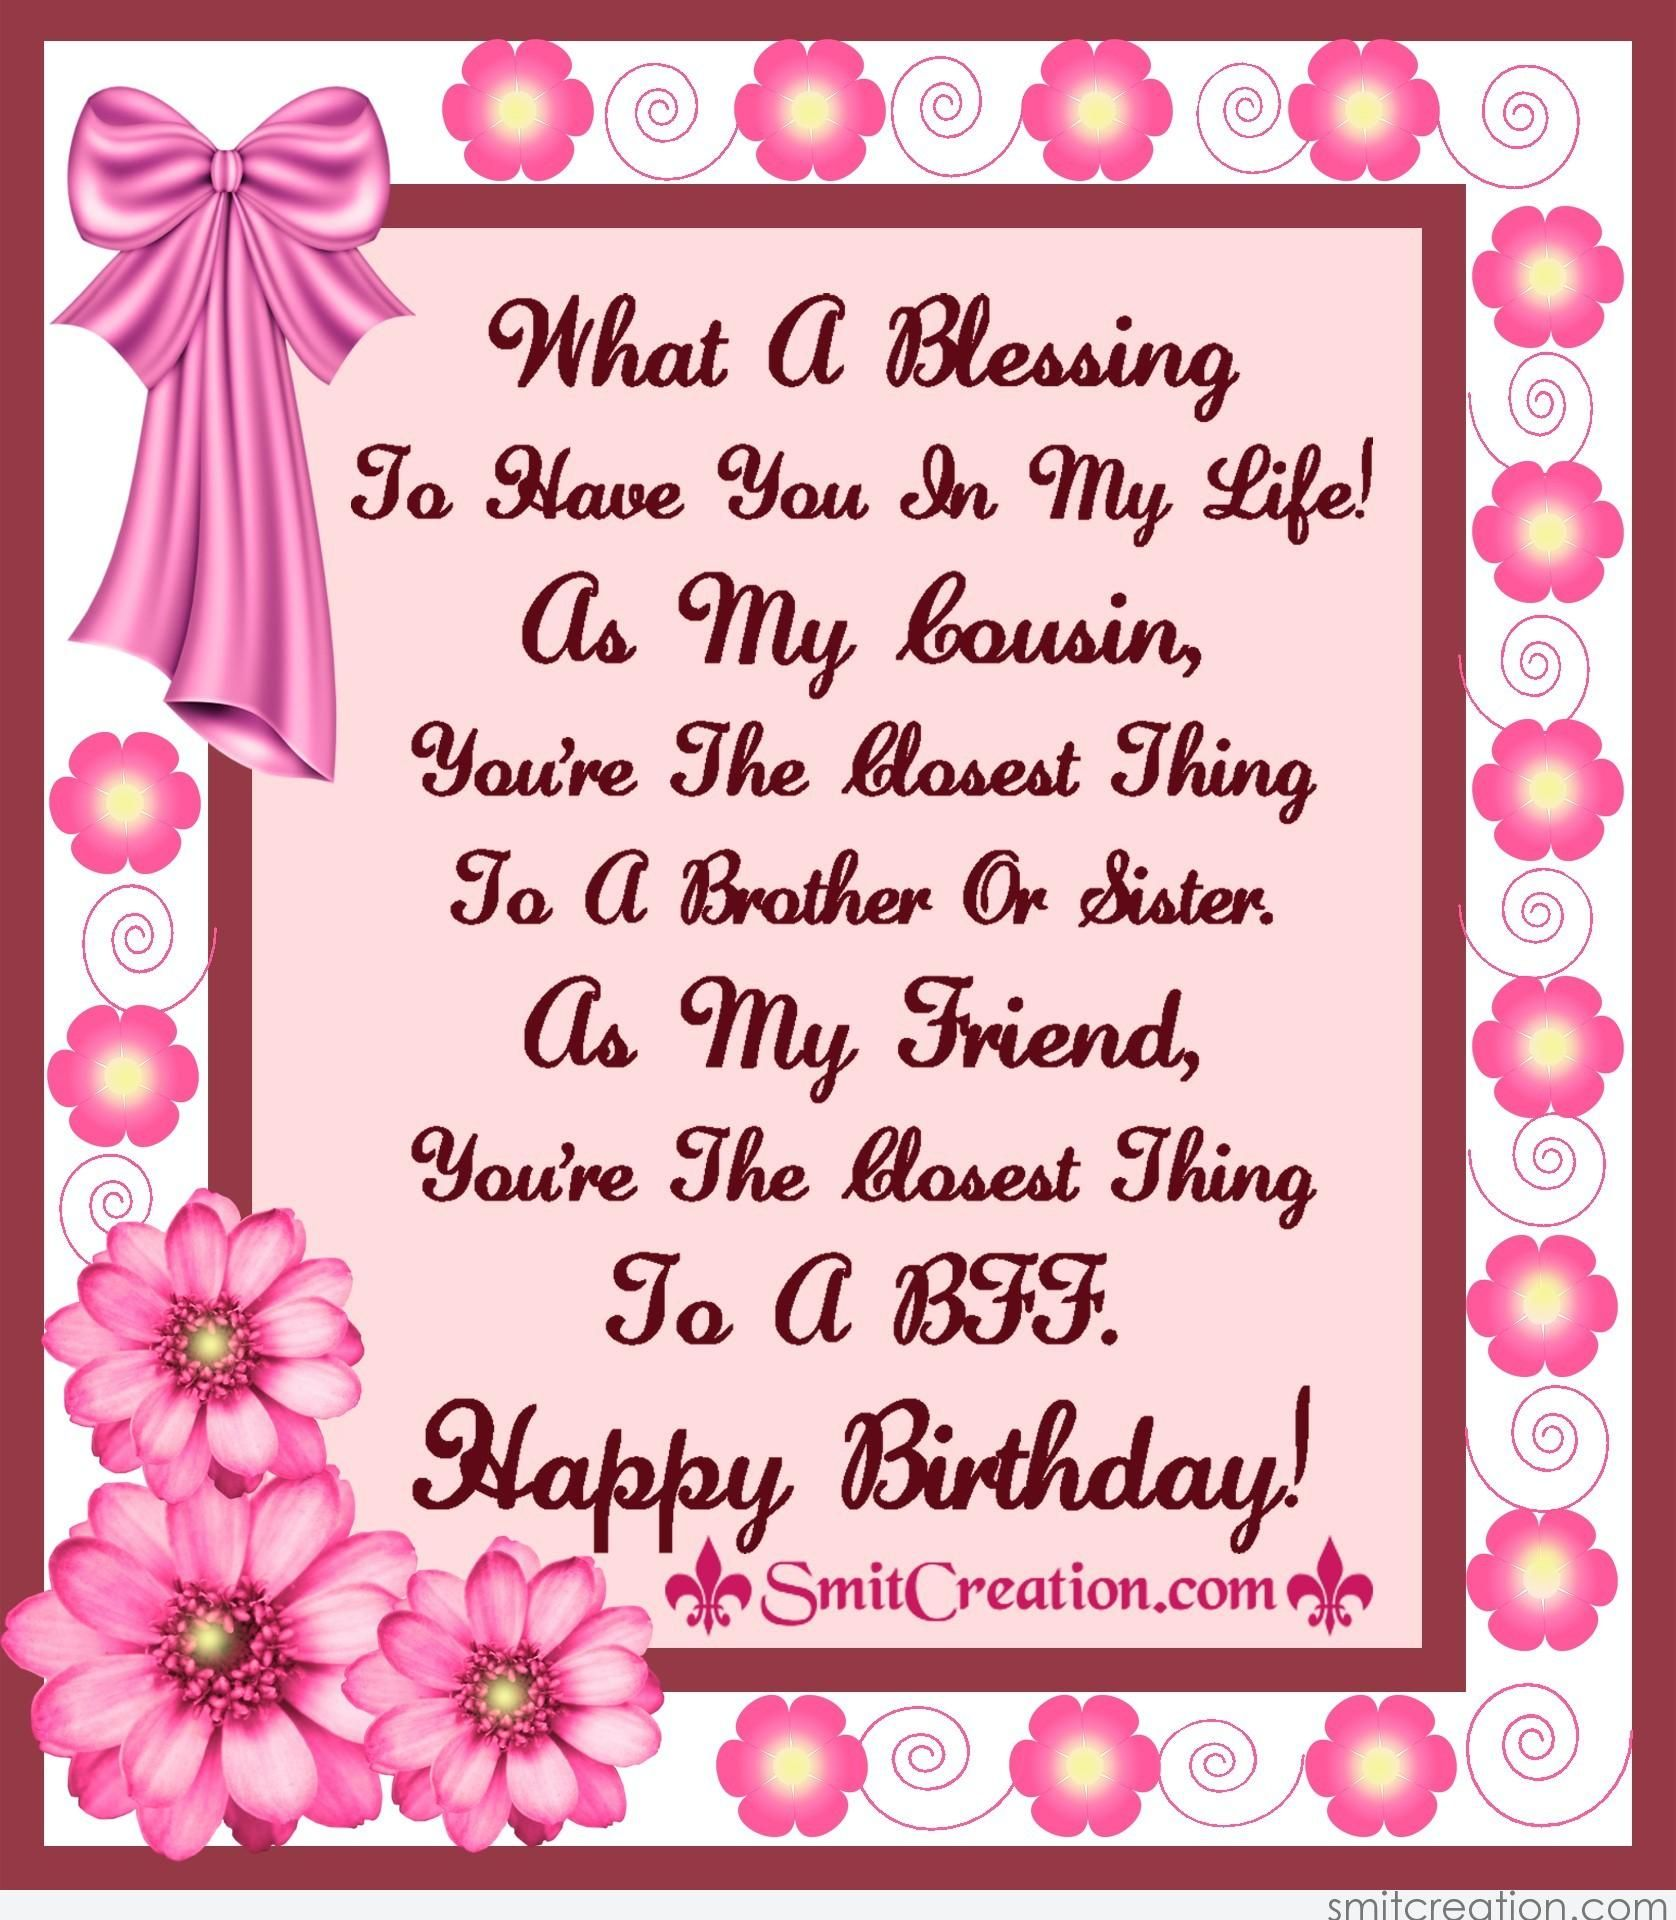 Birthday Wishes For Cousin Pictures And Graphics Smitcreation Happy Birthday Wishes For A Cousin